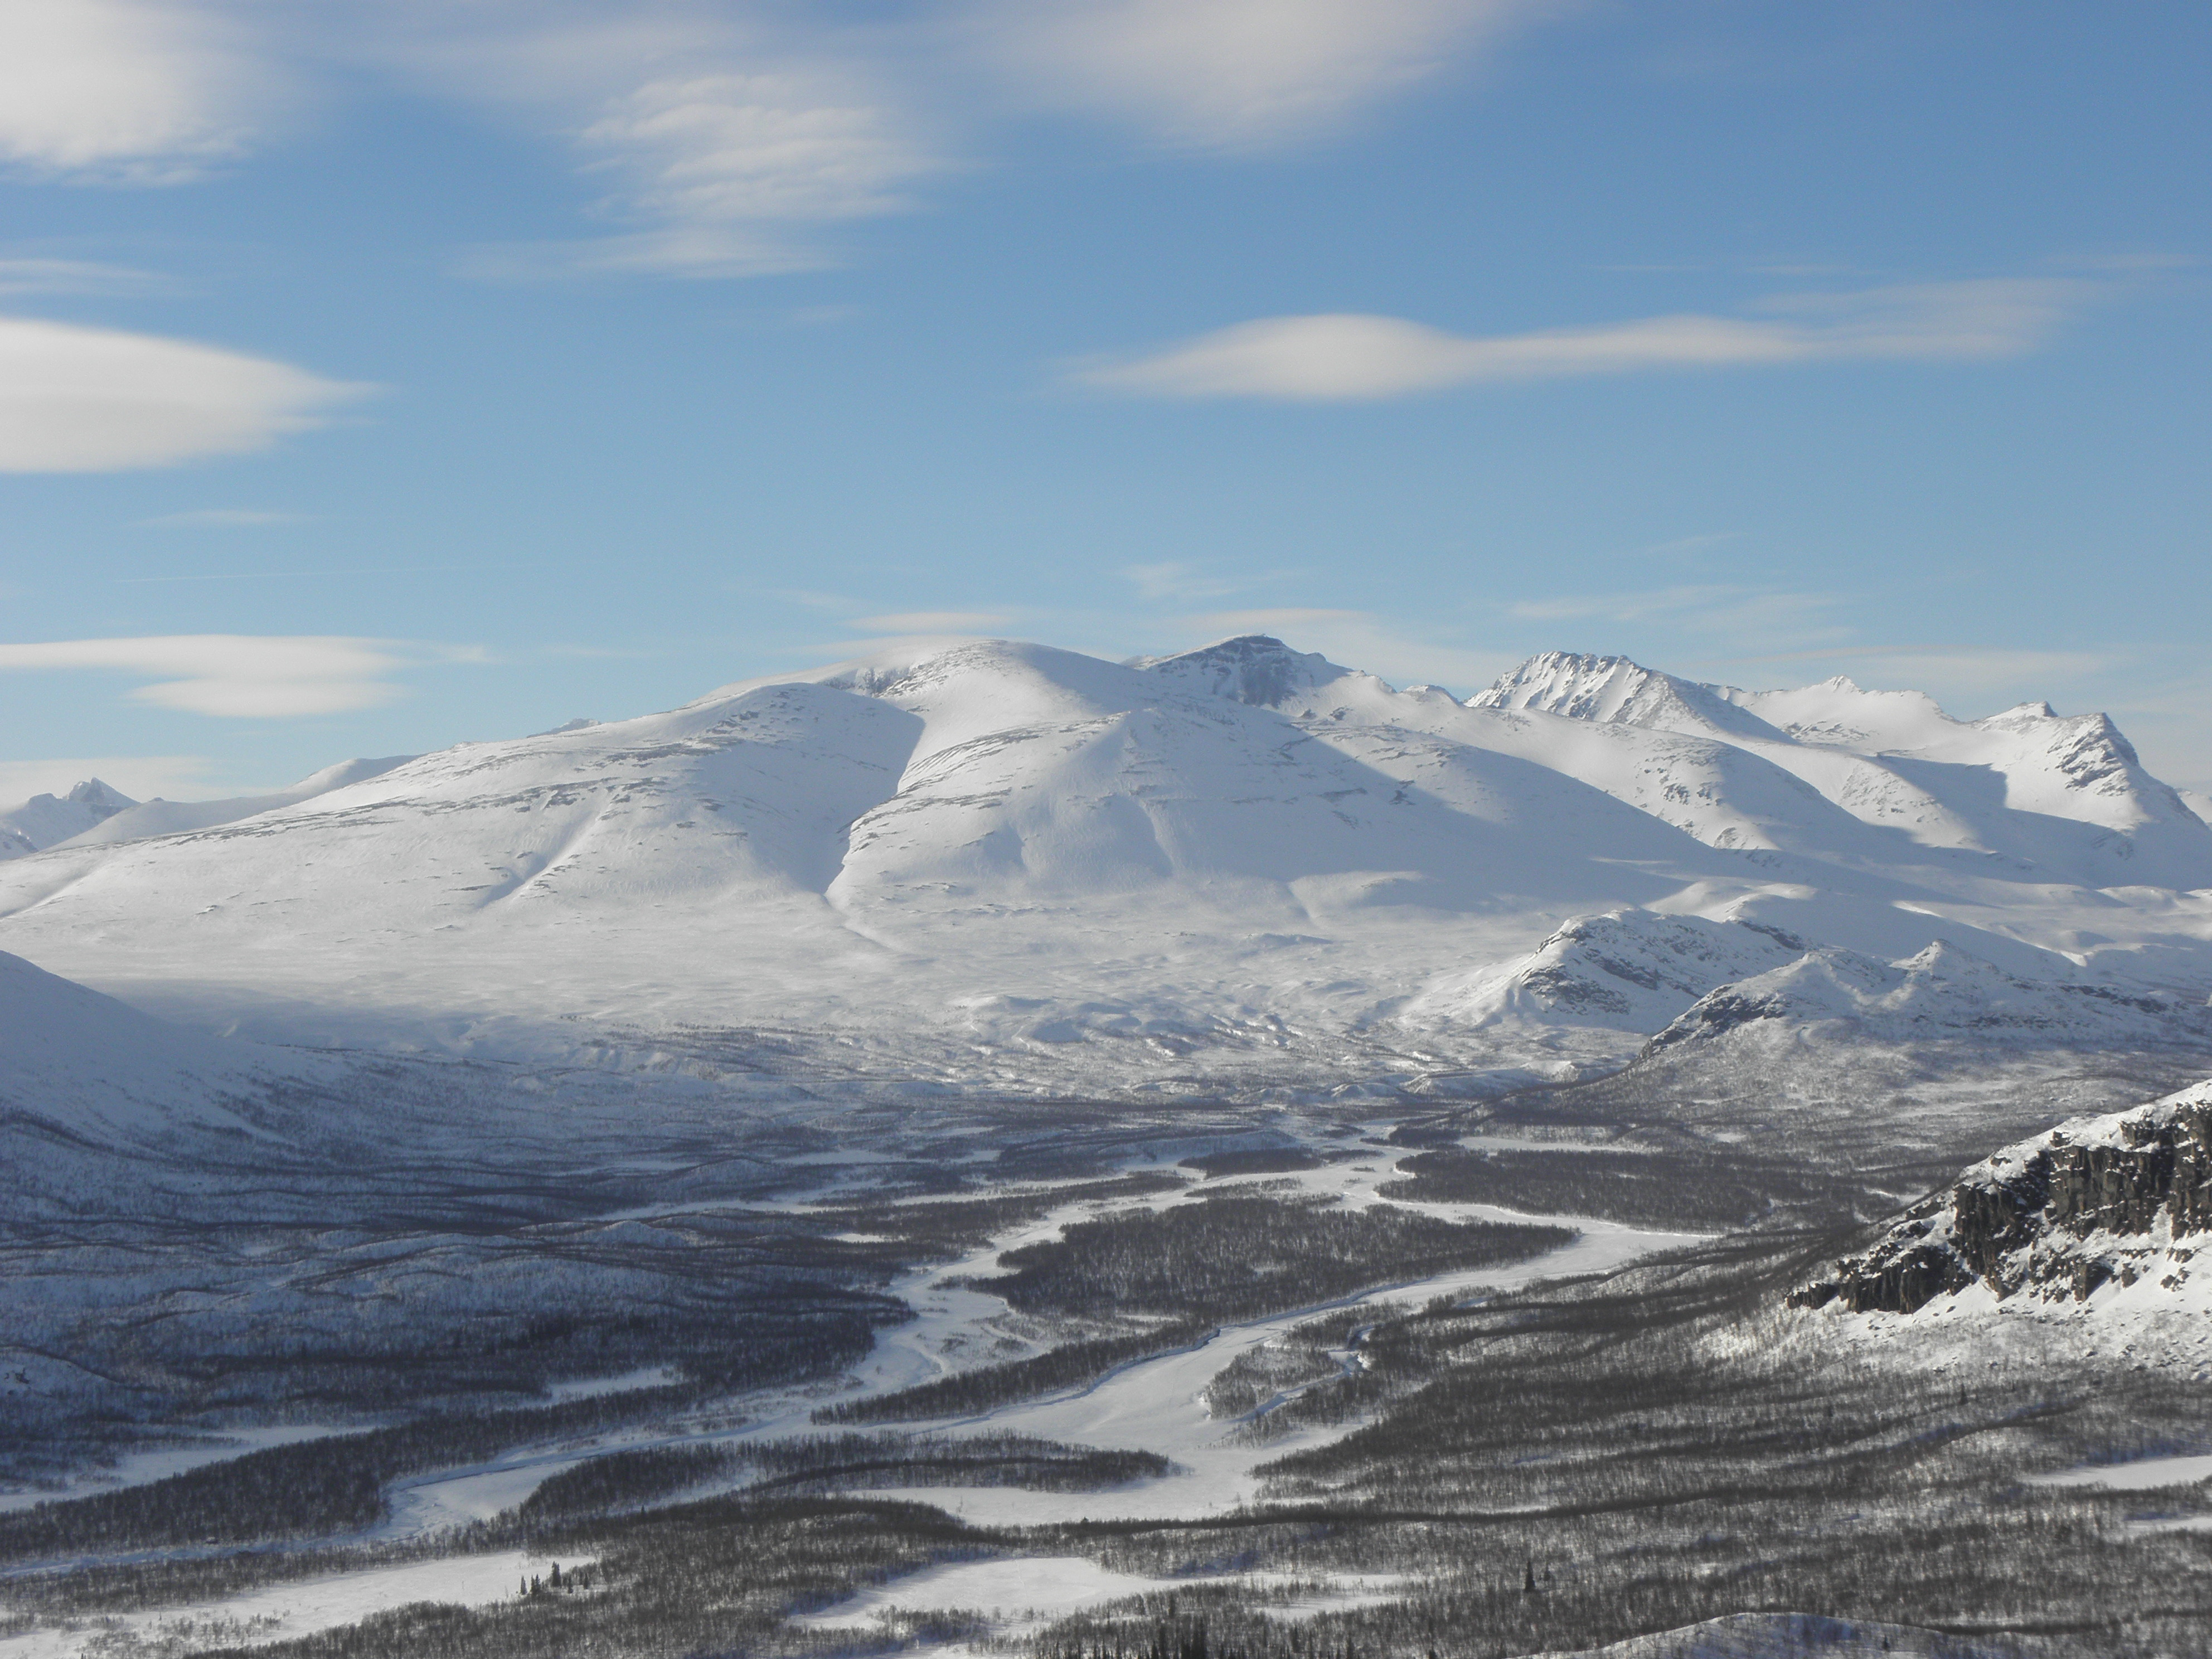 Guided tour in Swedish Lapland